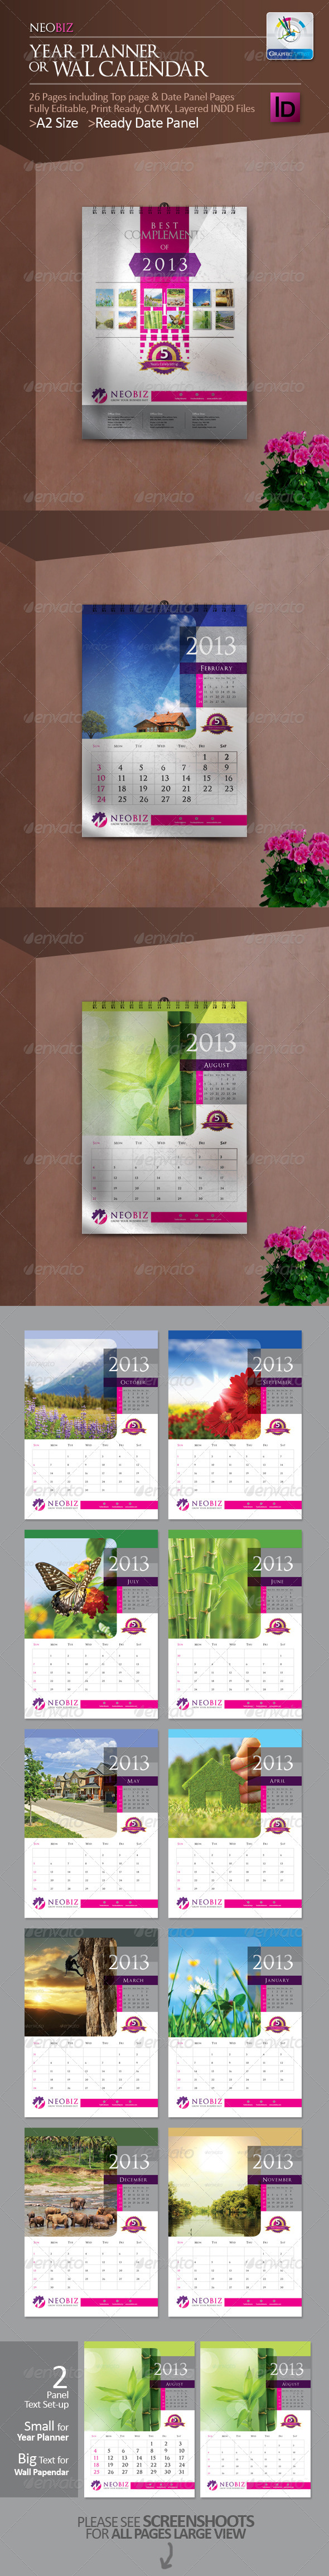 NeoBiz Year Planner/Wall Calendar - Calendars Stationery